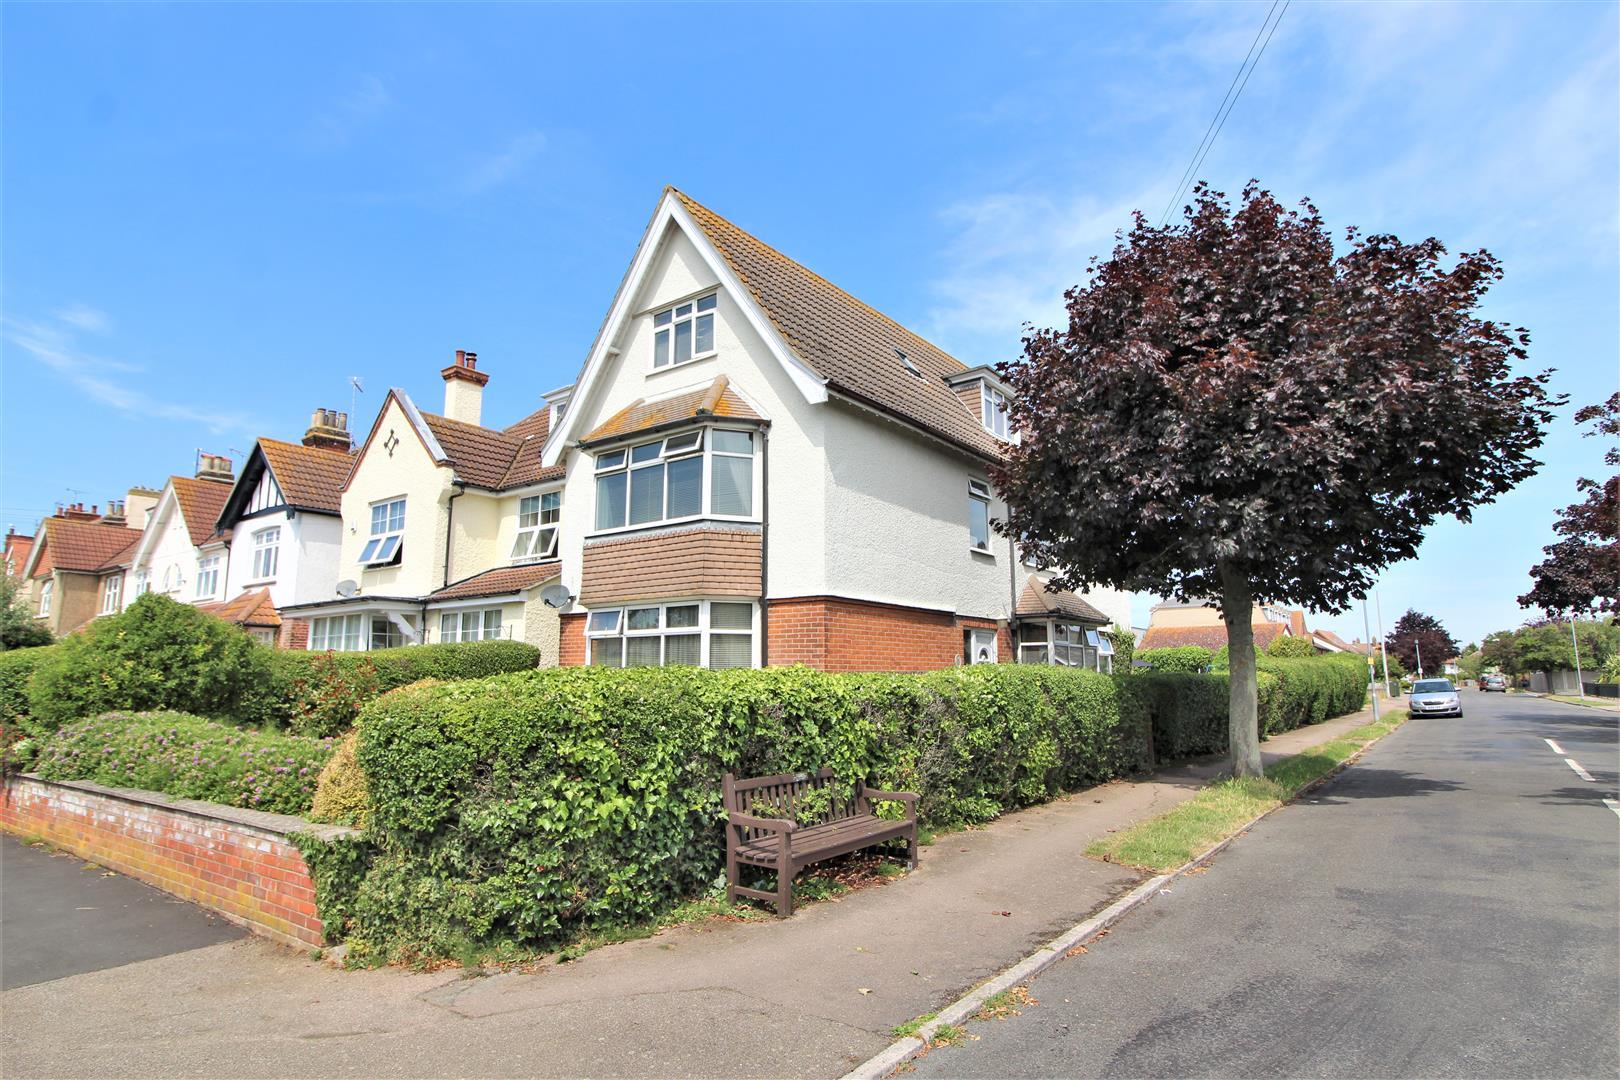 Old Parsonage Way, Frinton-On-Sea, Essex, CO13 9AN